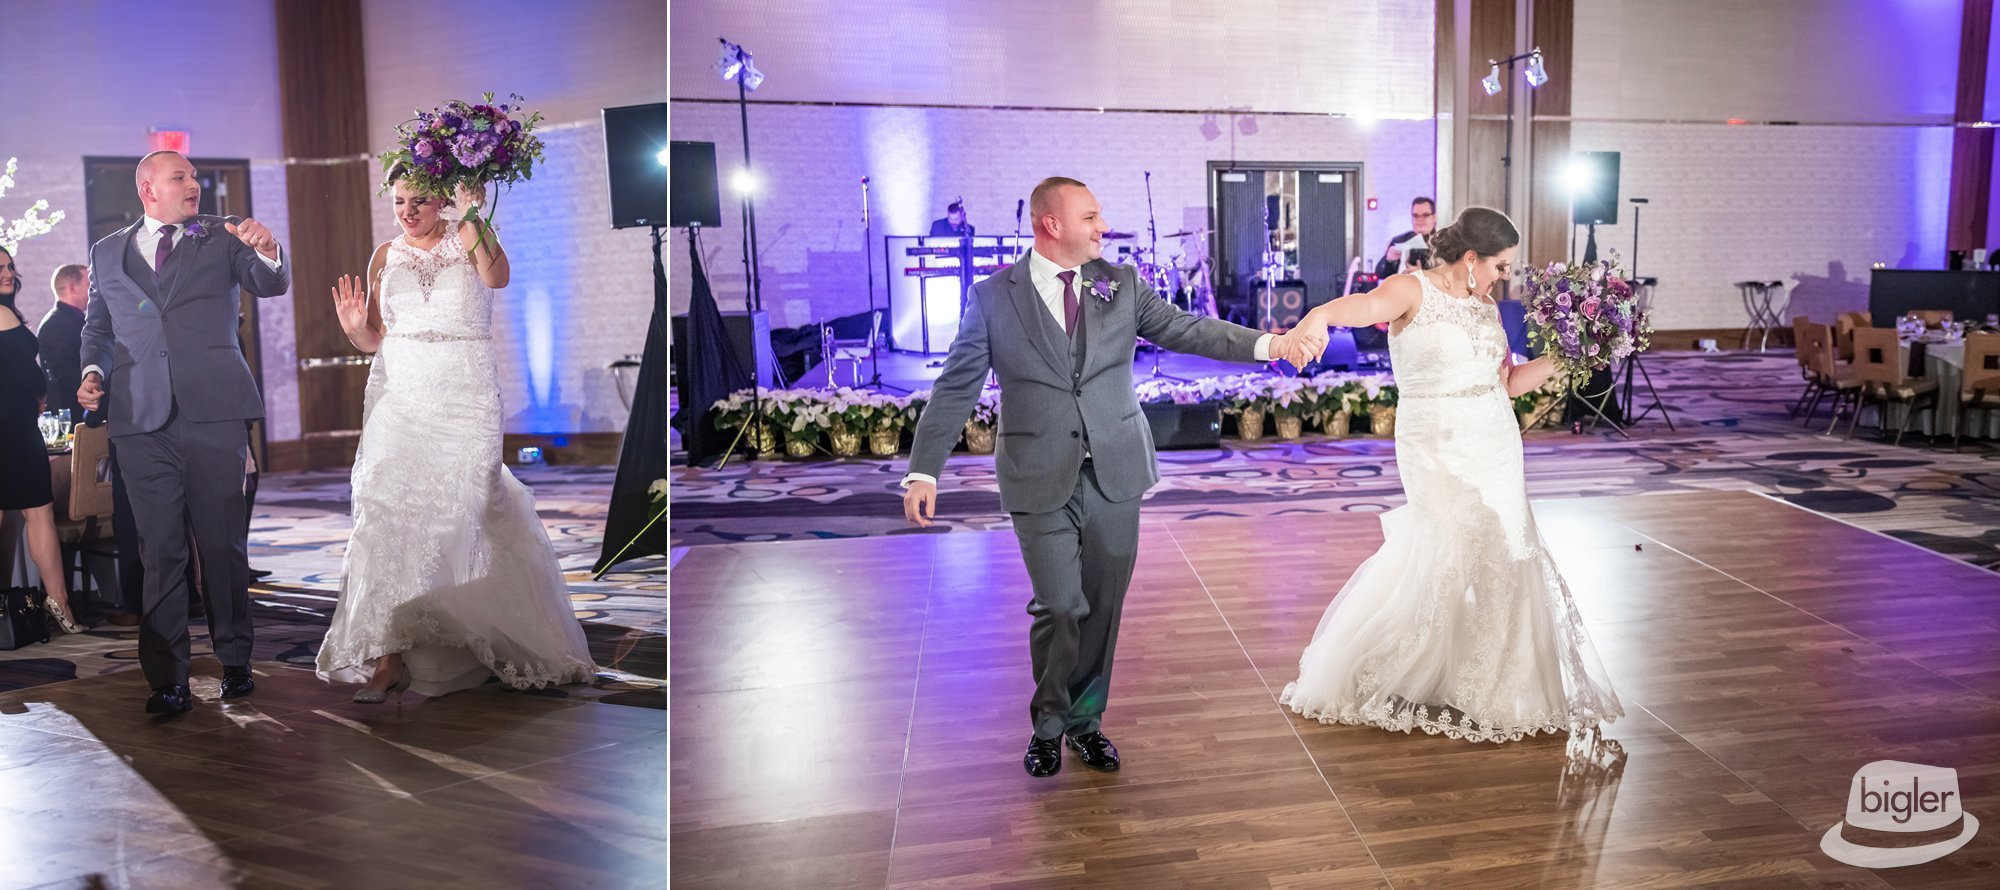 Kelsey + Nick on December 28, 2018 ♥ Dave Bigler Wedding & Films at Rivers Casino (Schenectady, NY)